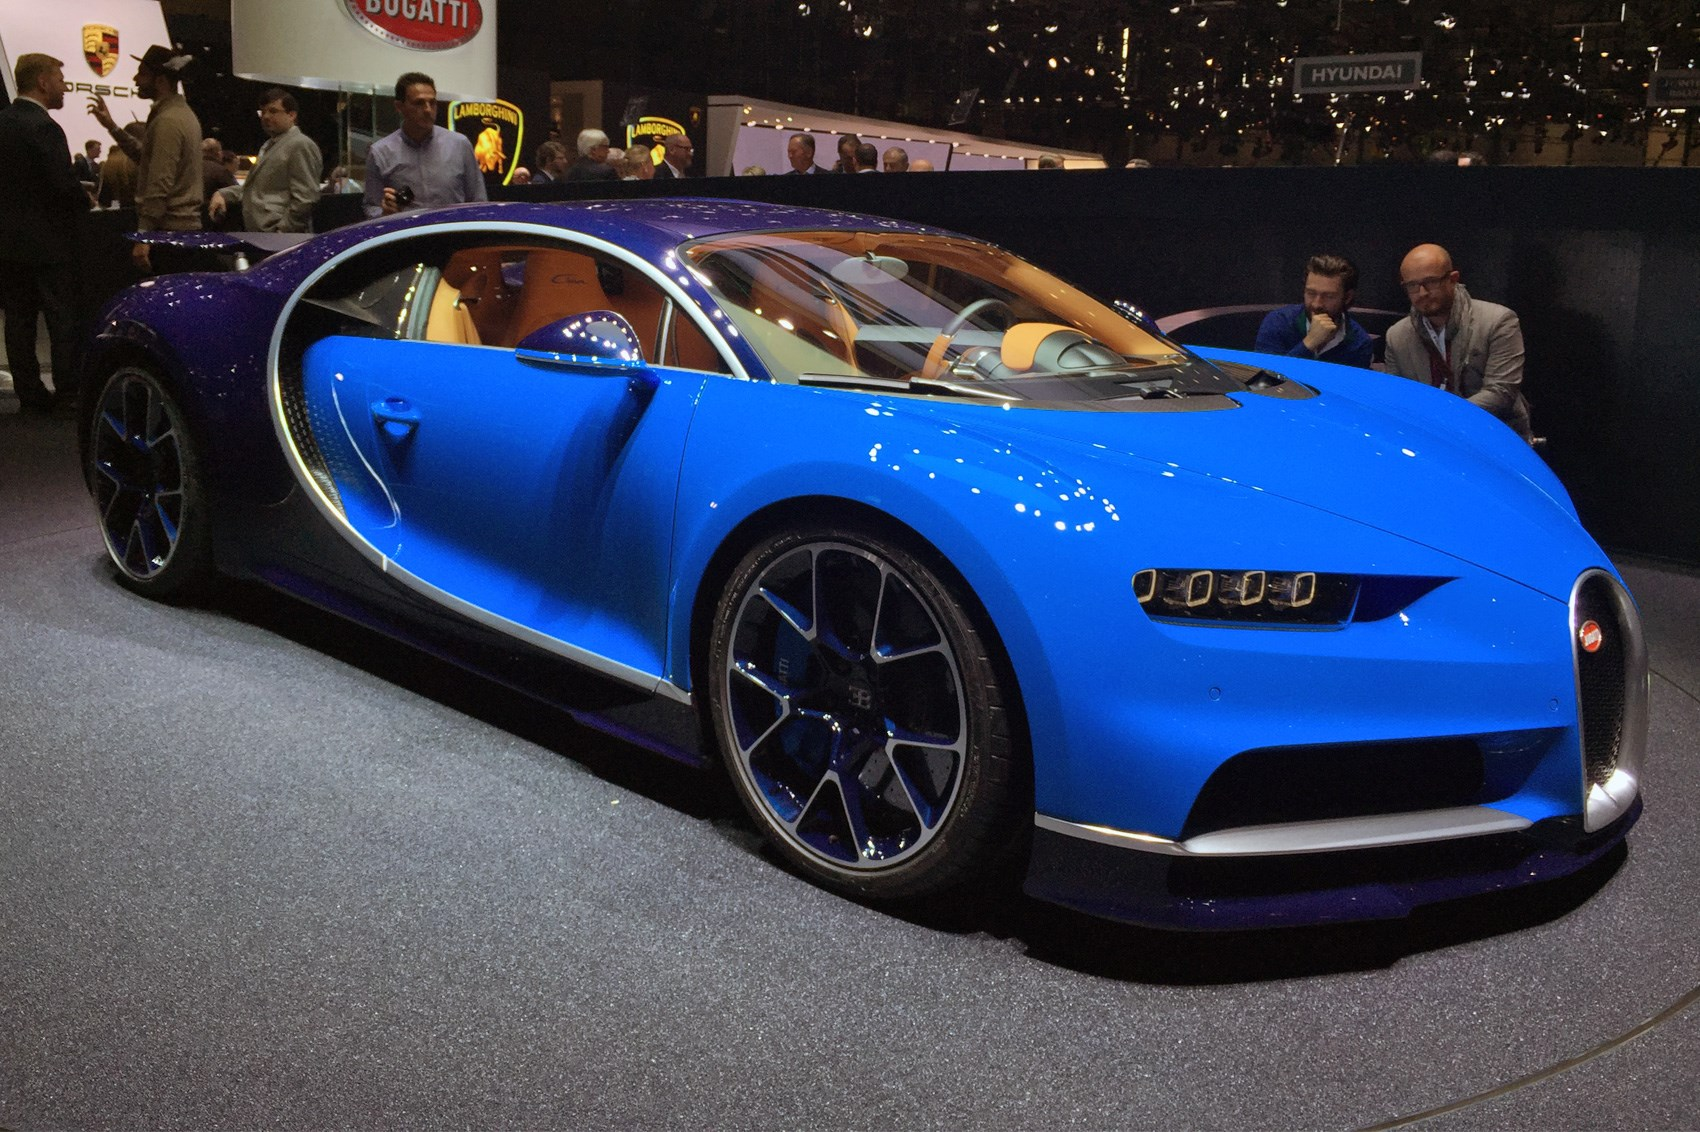 Ultrablogus  Pleasant Bugatti Is Go New Chiron Name Confirmed Here At Geneva  By  With Fair New Chiron Name Confirmed Here At Geneva  By Car Magazine With Alluring Interior Door Lock Mechanism Also F Interior In Addition Bmw Oyster Interior And Bmw E Custom Interior As Well As Custom Astro Van Interior Additionally Interior Car Lights From Carmagazinecouk With Ultrablogus  Fair Bugatti Is Go New Chiron Name Confirmed Here At Geneva  By  With Alluring New Chiron Name Confirmed Here At Geneva  By Car Magazine And Pleasant Interior Door Lock Mechanism Also F Interior In Addition Bmw Oyster Interior From Carmagazinecouk